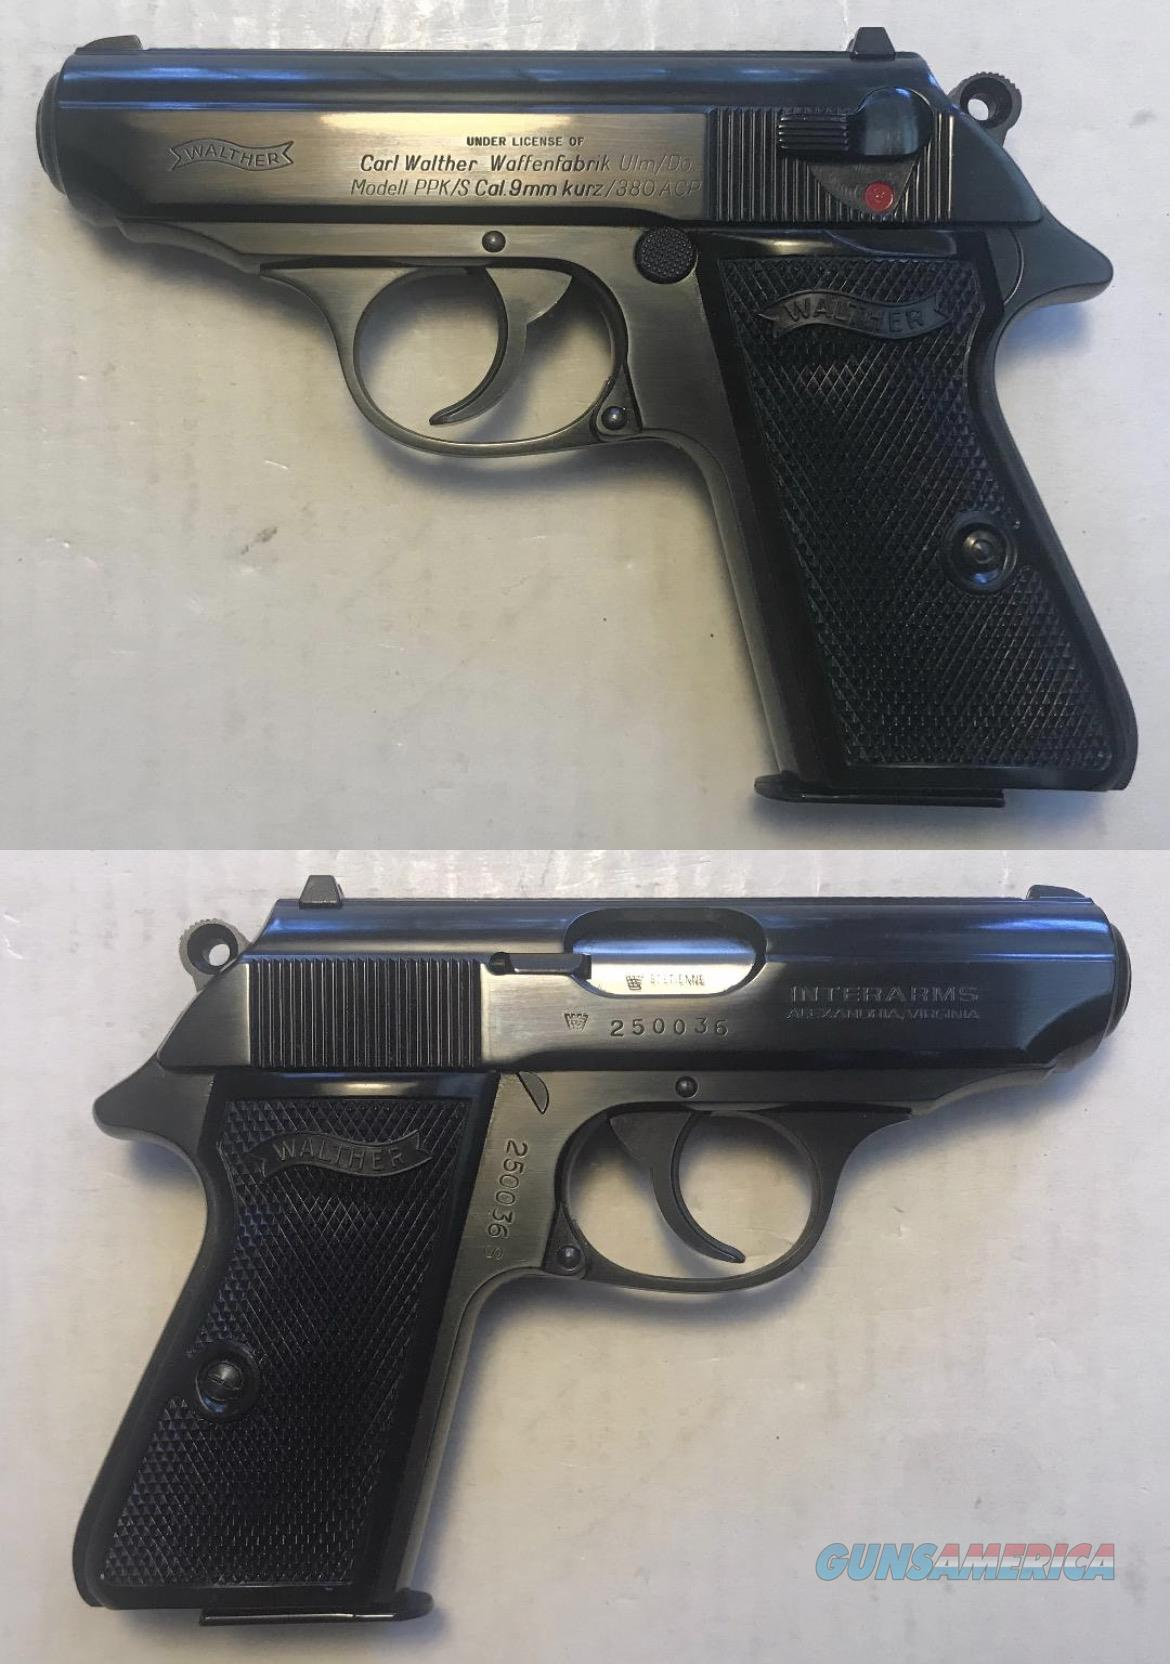 Walther PPK/S 9mmK ( 380acp)